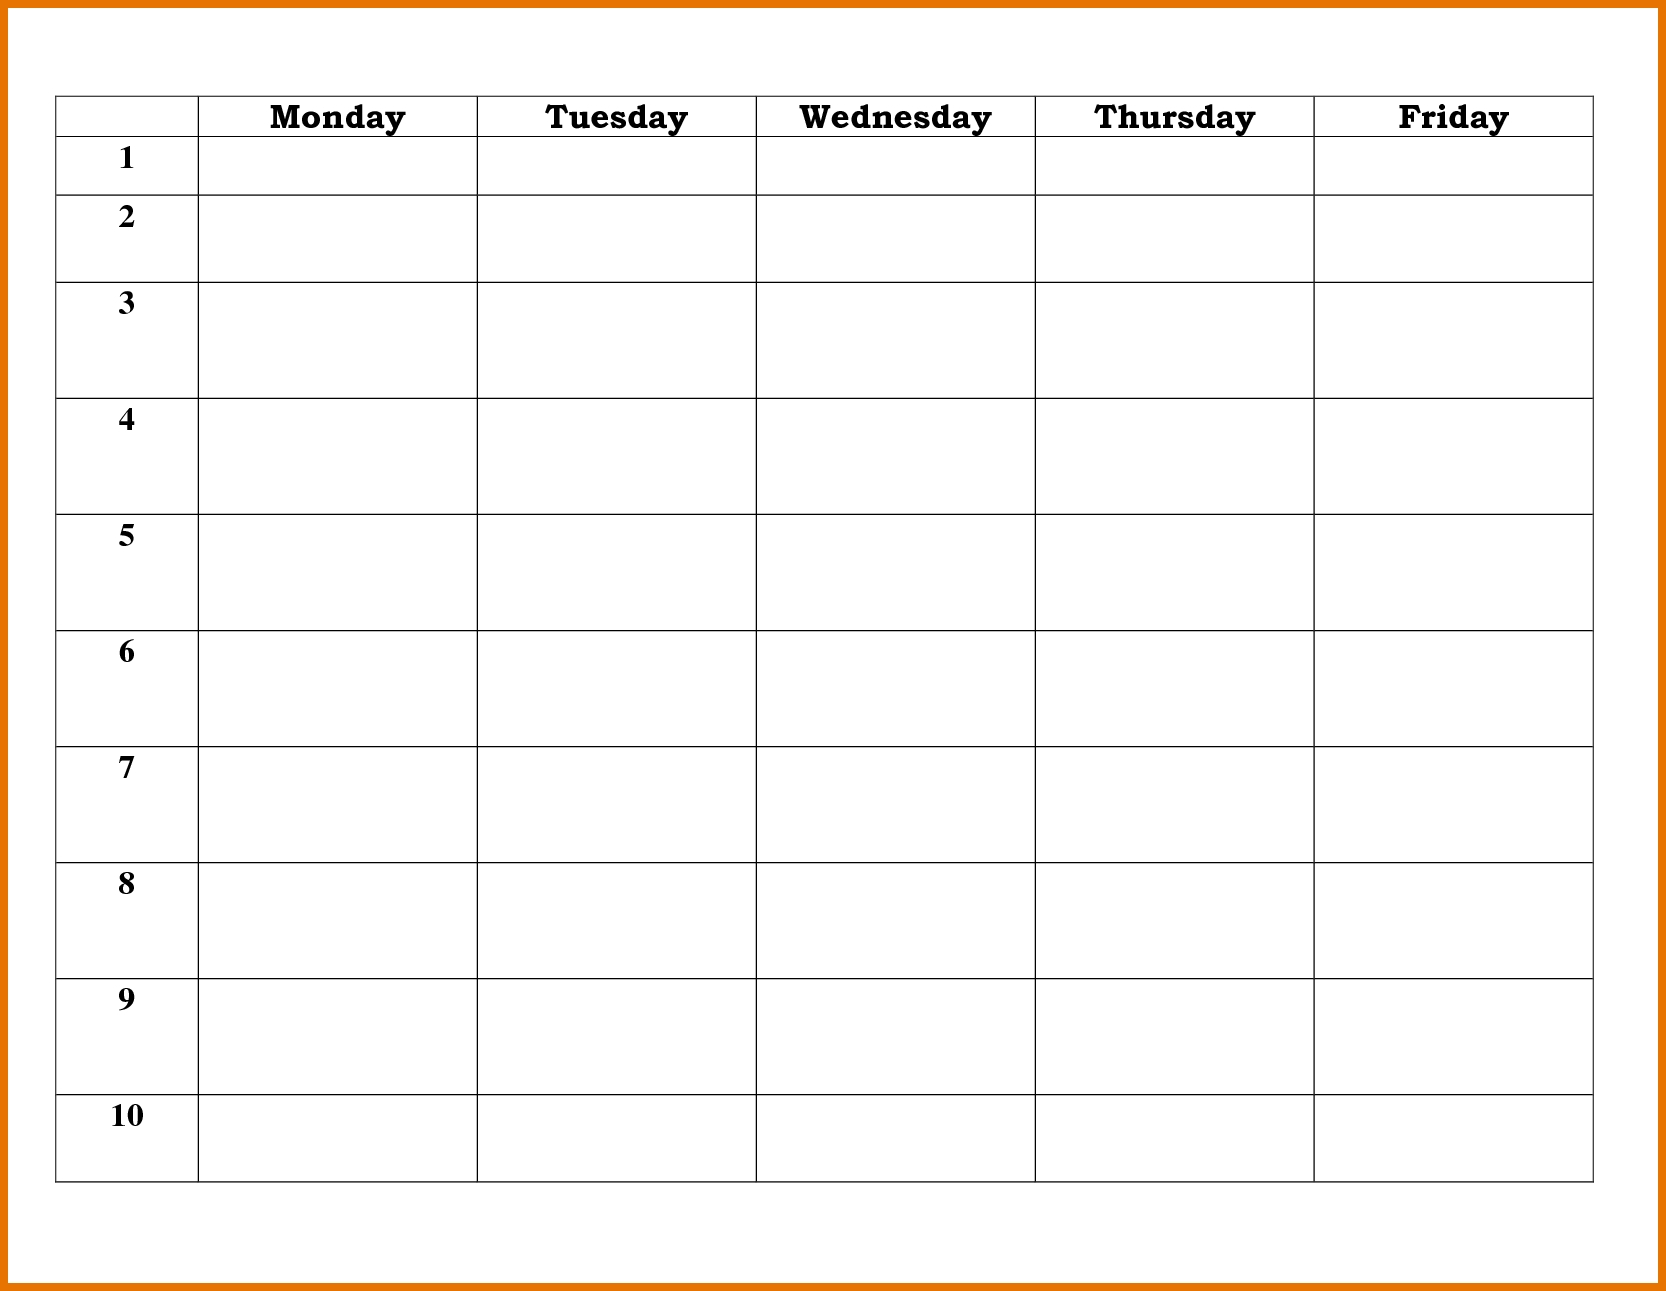 Blank 5 Day School Timetable | Calendar Printing Example with regard to 5 Day Calendar Template Word